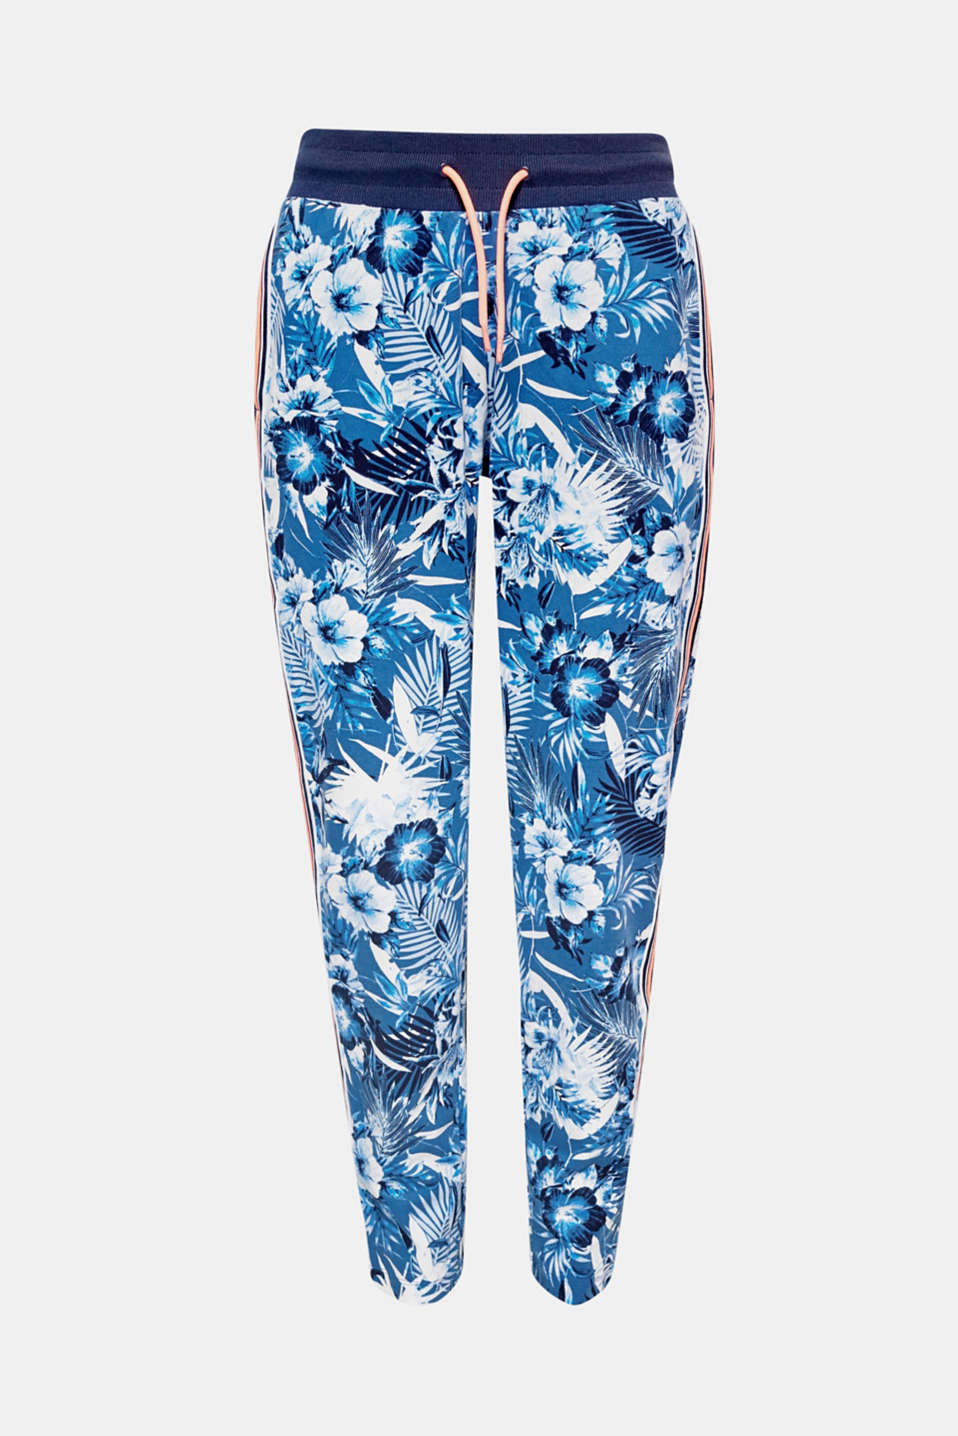 The bold floral print and neon-coloured tuxedo stripes make these dense jersey tracksuit bottoms particularly stylish!